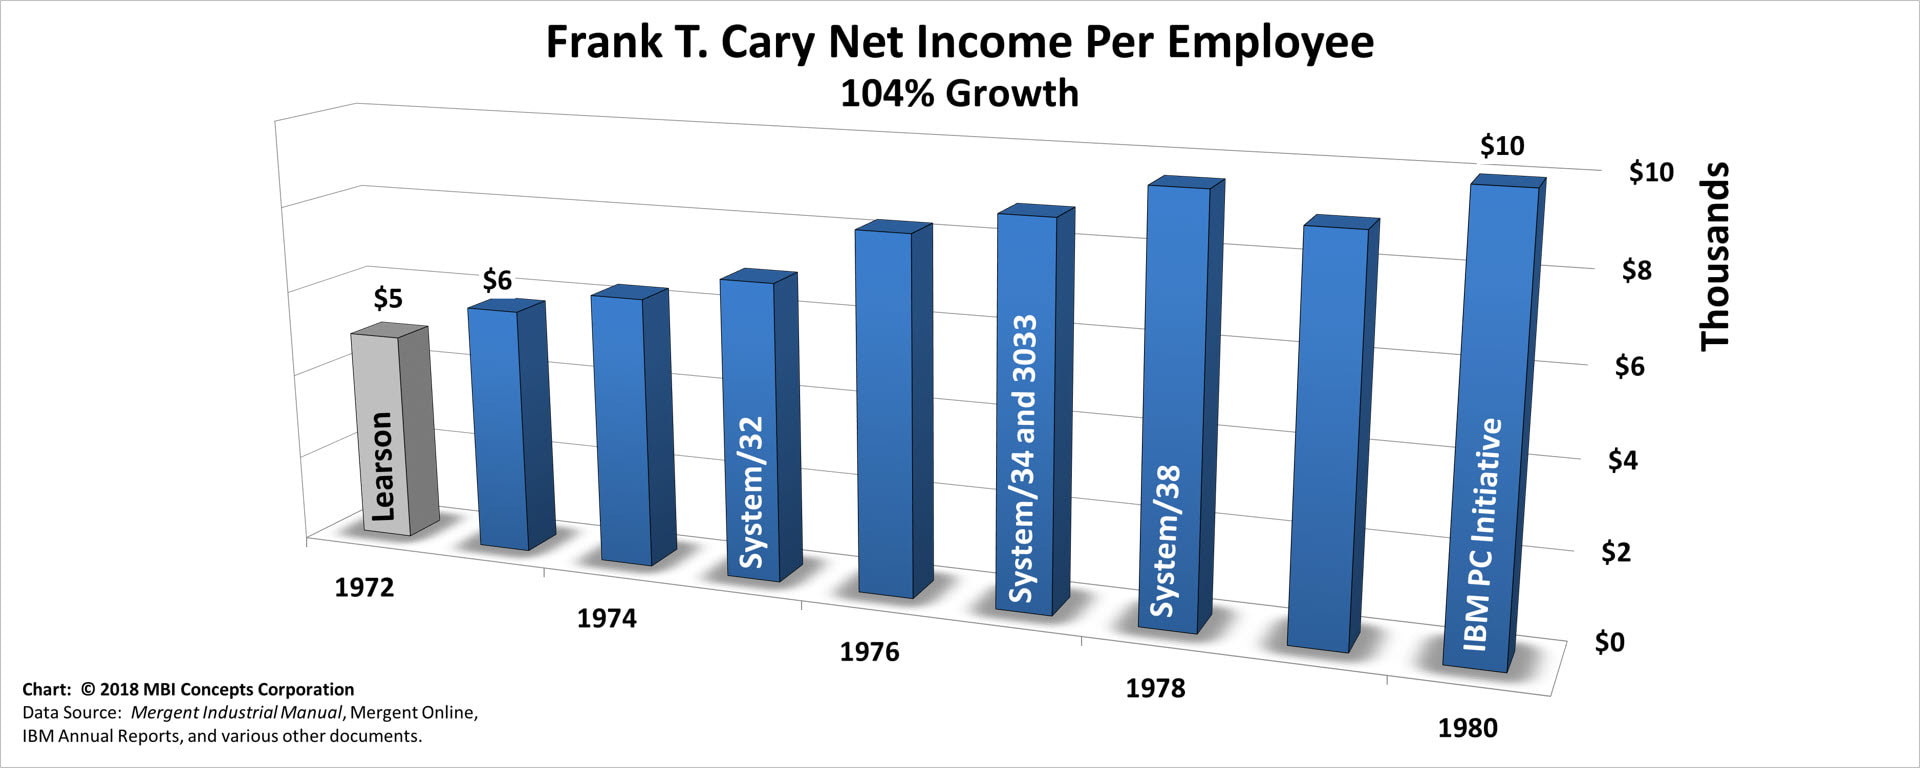 Bar chart of Frank T. Cary's Yearly Net Income per Employee over his 8 years as IBM's CEO from 1973 to 1980